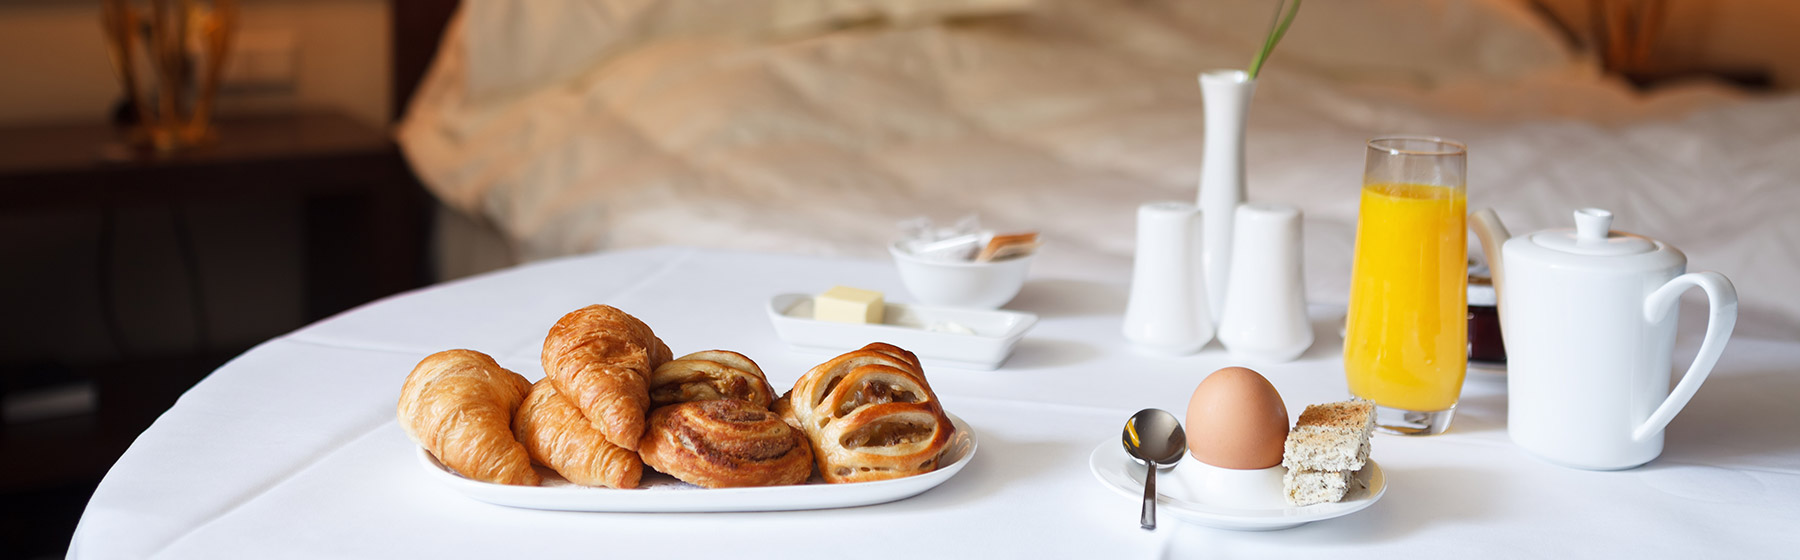 Breakfast Buffet for Two Pack at Ellis Hotel, Atlanta